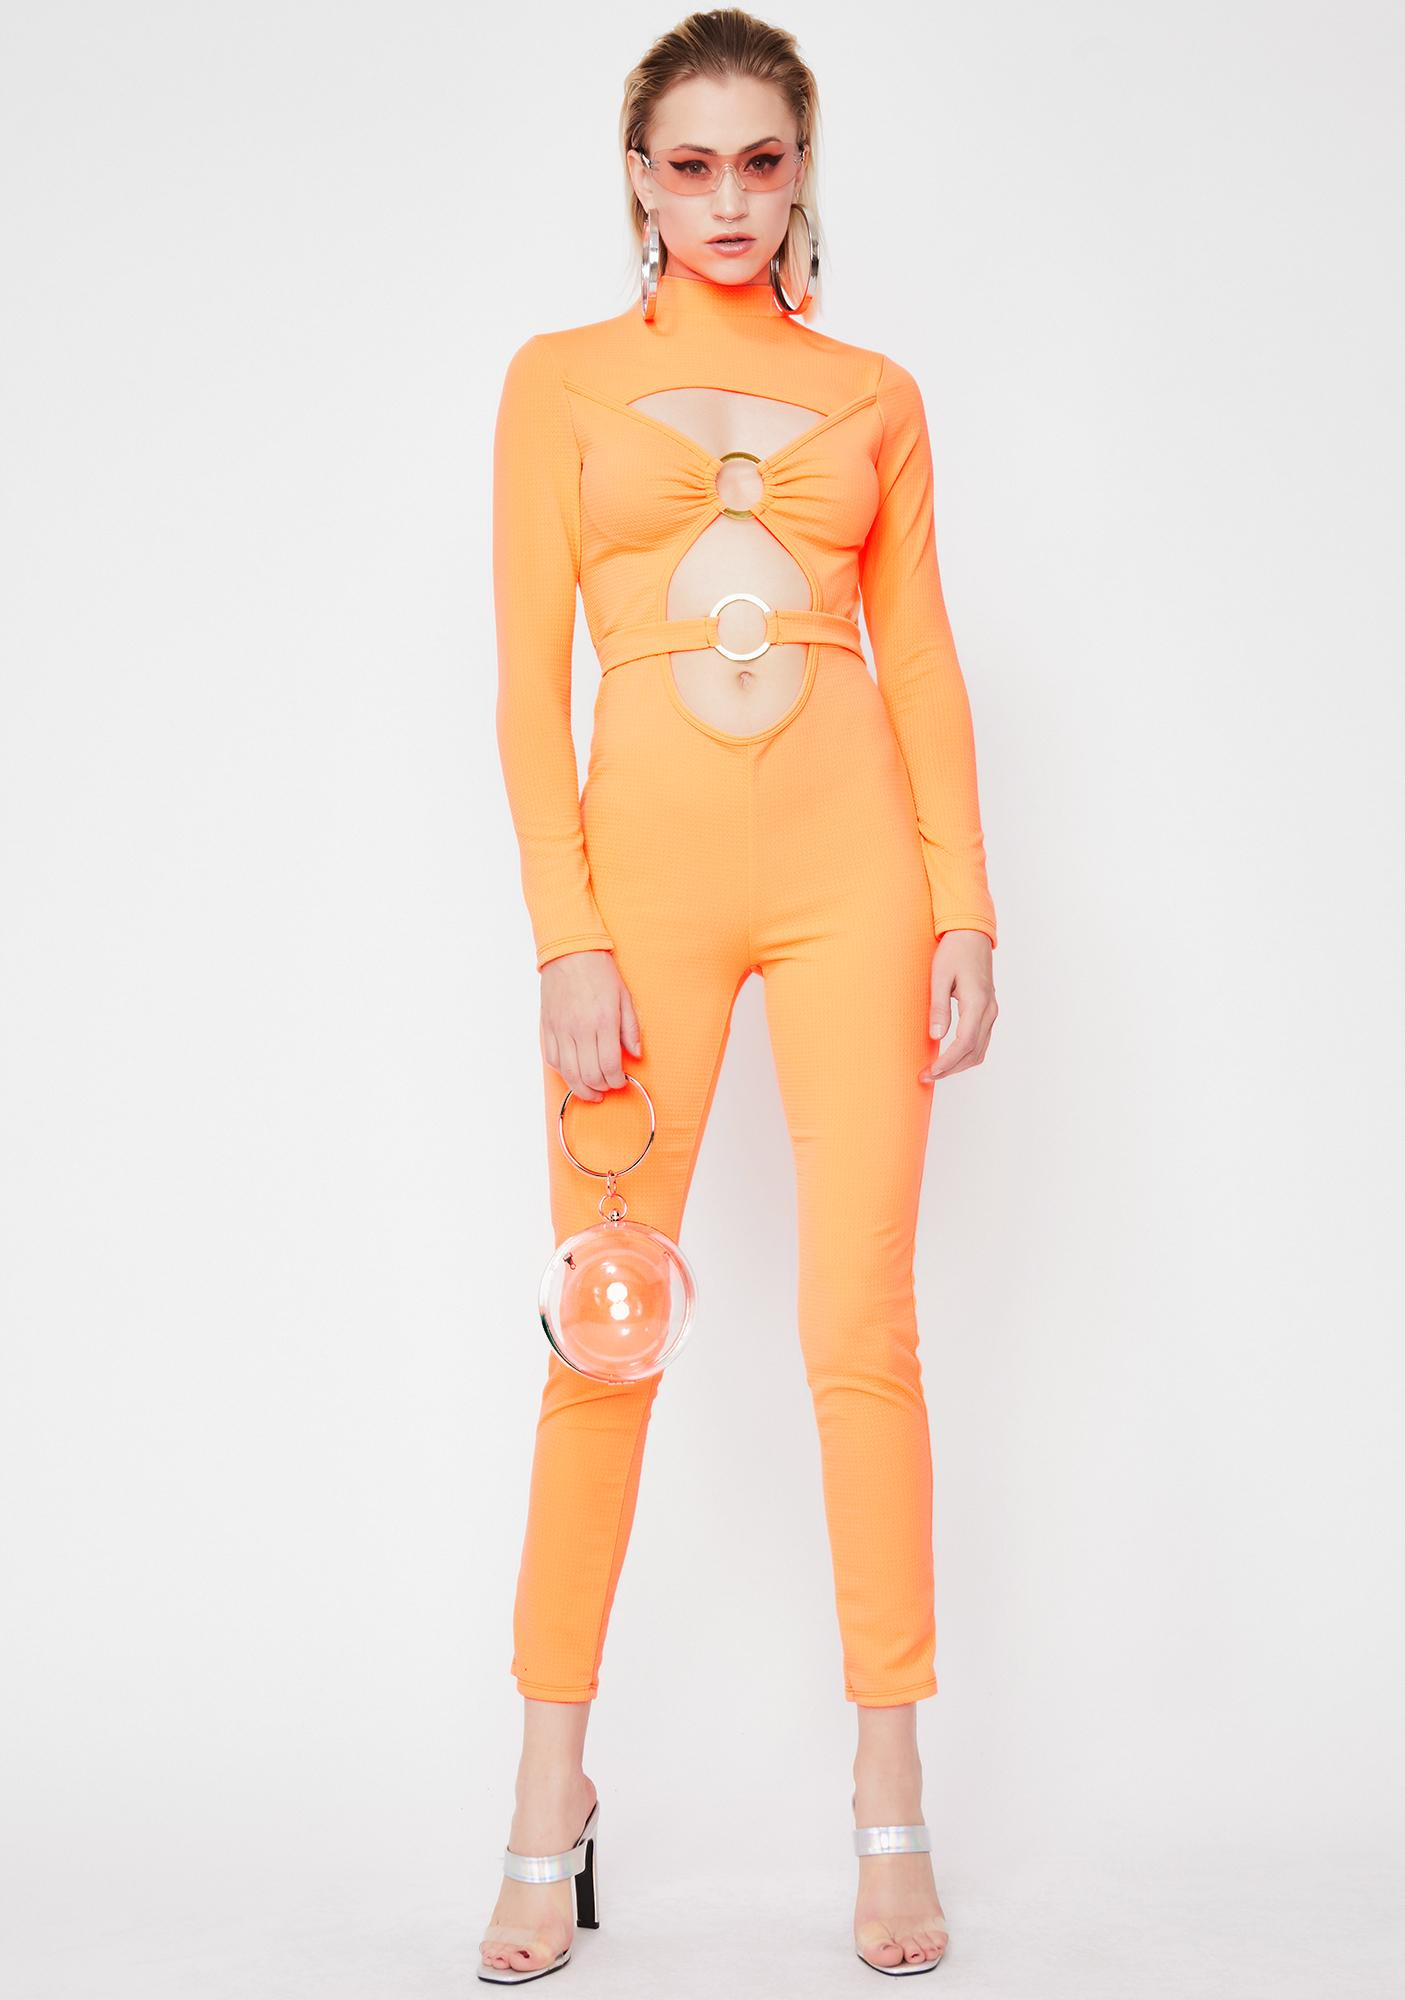 Juiced A La Mode O-Ring Catsuit